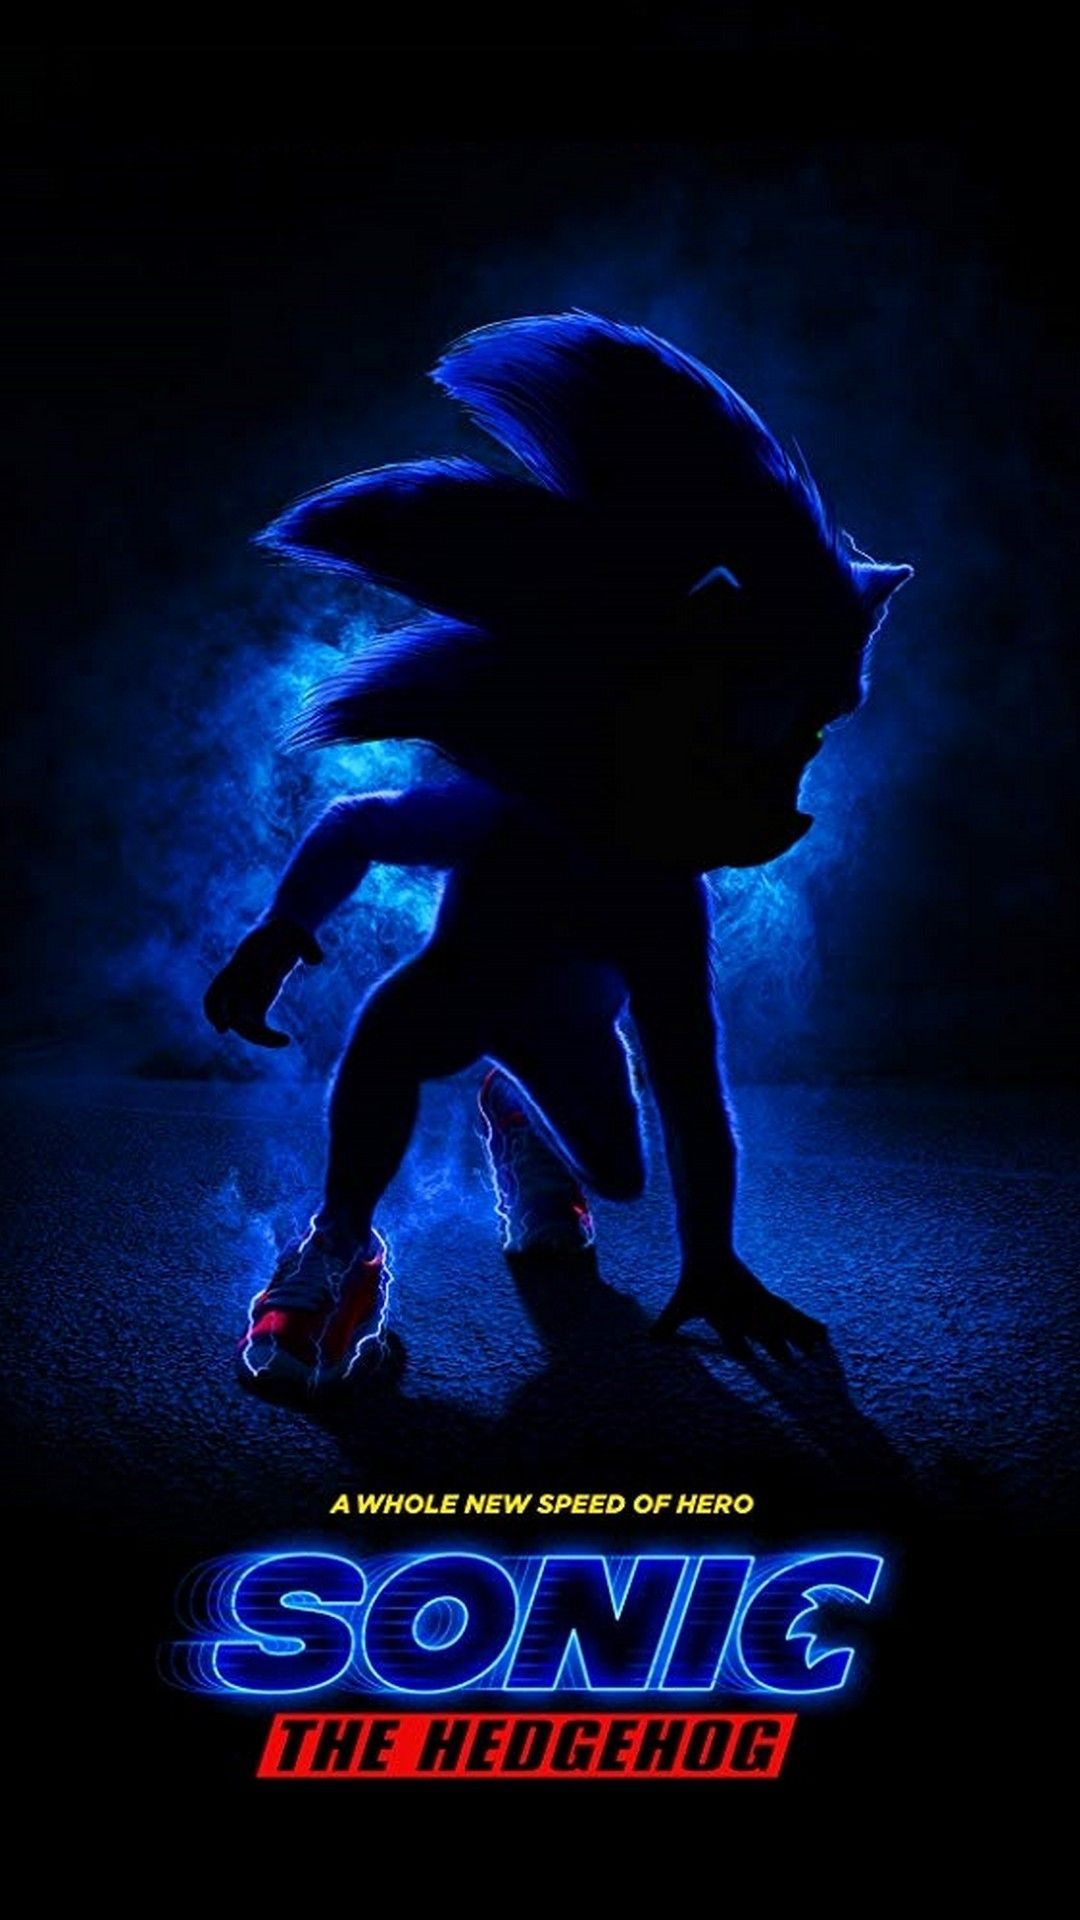 Sonic The Hedgehog Poster Hd Best Movie Poster Wallpaper Hd